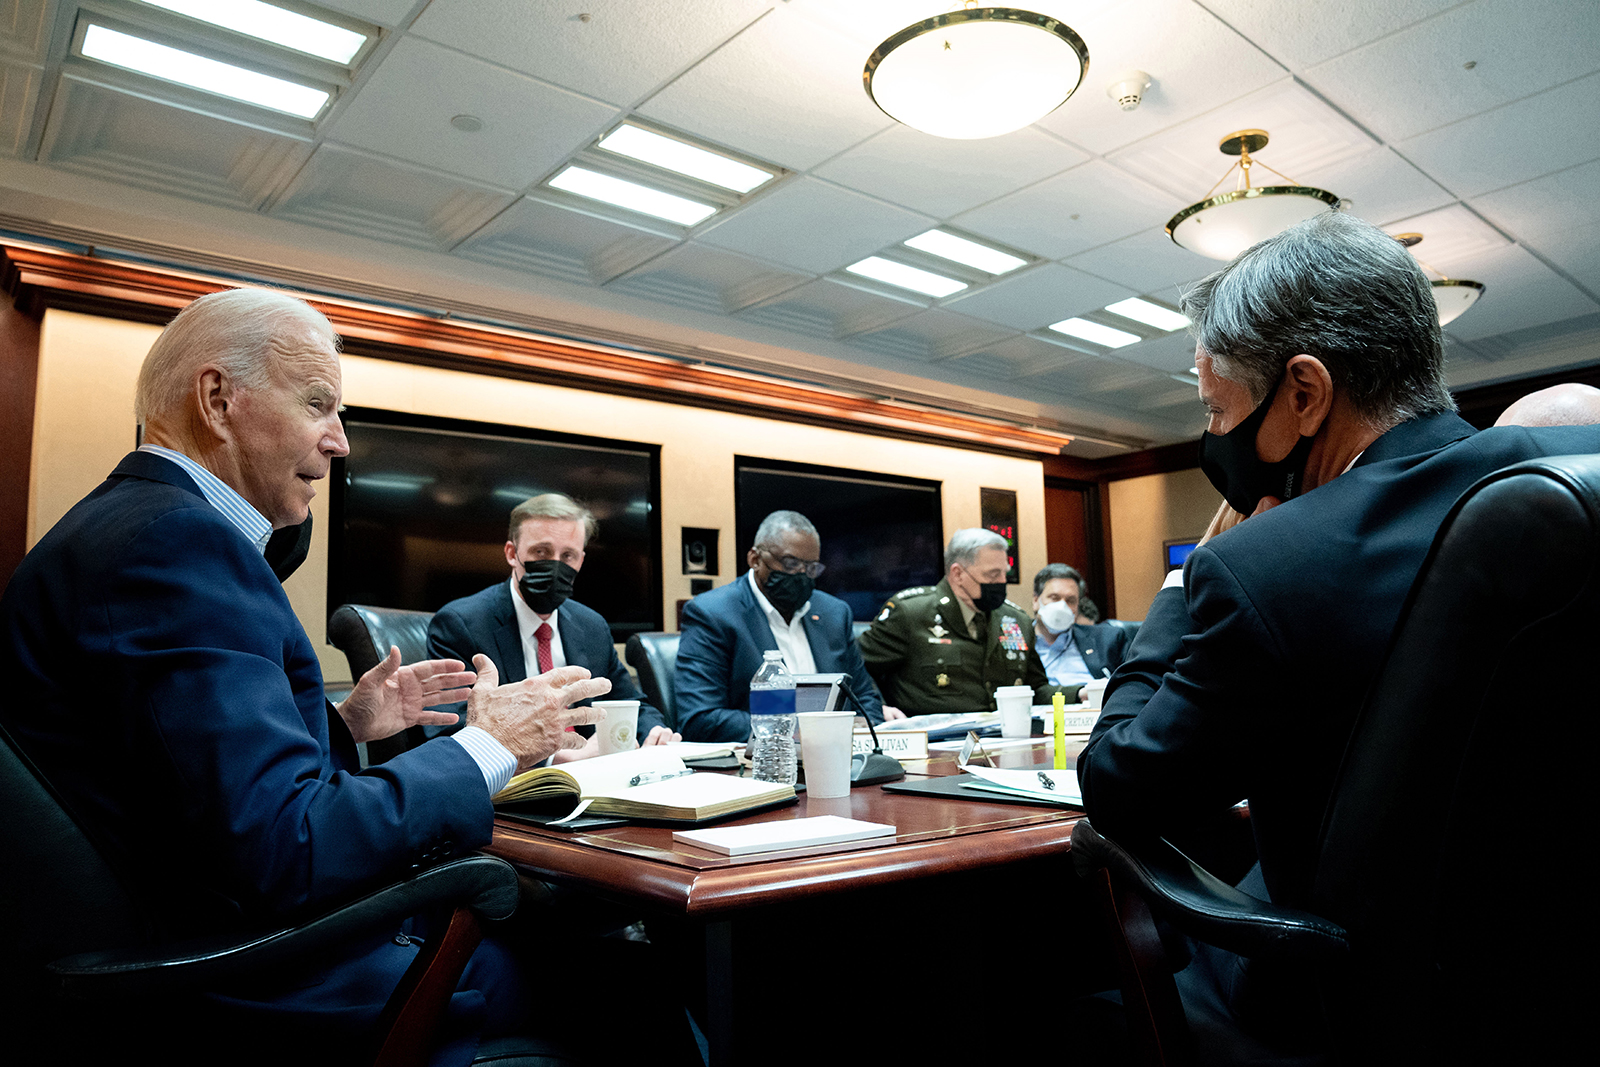 In this handout photo provided by the White House, President Joe Biden meets with his national security team for an operational update on the situation in Afghanistan on August 22 at the White House in Washington. They discussed the security situation in Afghanistan and counterterrorism operations, including ISIS-K.